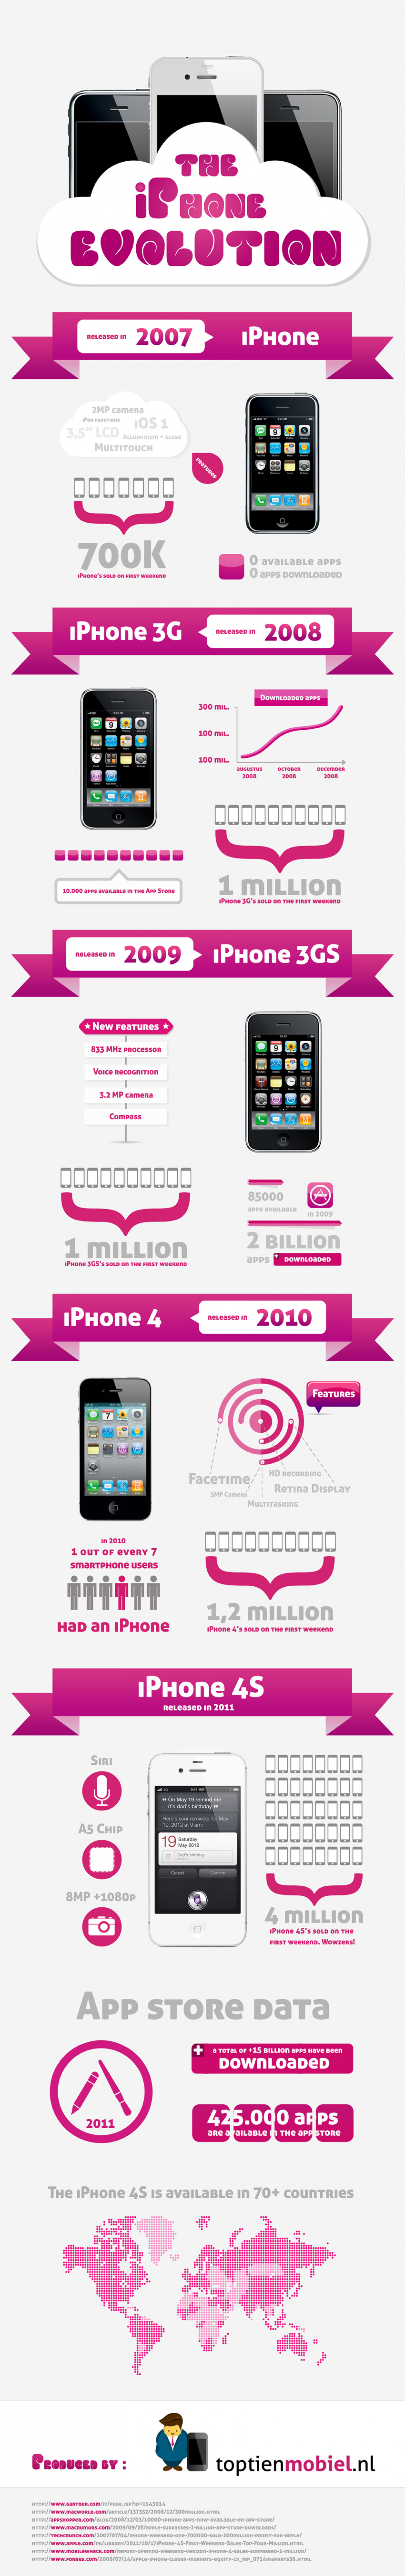 The iPhone Evolution Infographic